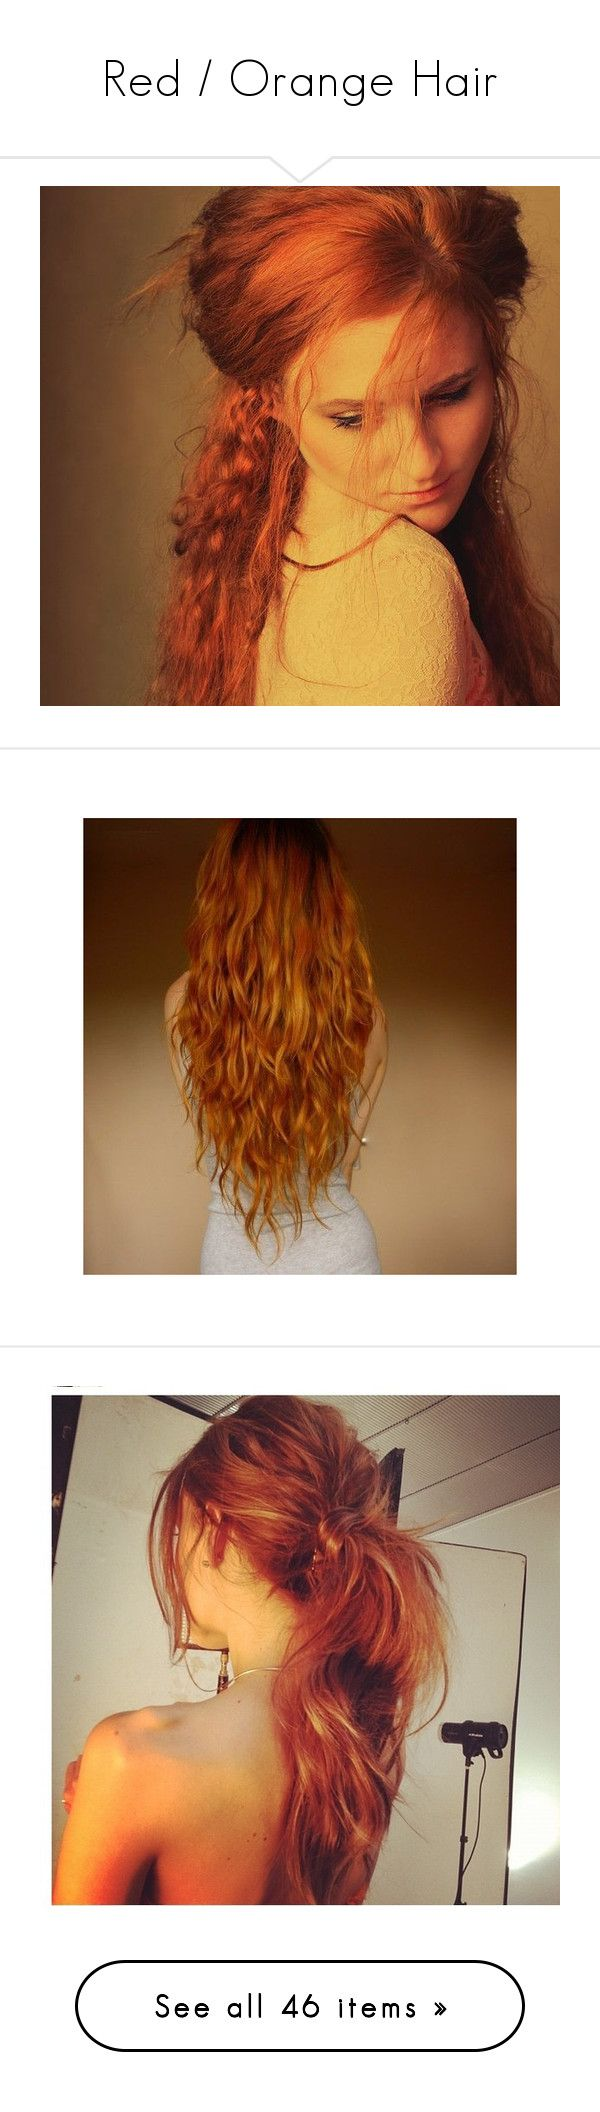 """""""Red / Orange Hair"""" by ahaytcher ❤ liked on Polyvore featuring hair, people, models, red hair, beauty products, haircare, hair styling tools, hair styles, hairstyles and cabelos"""